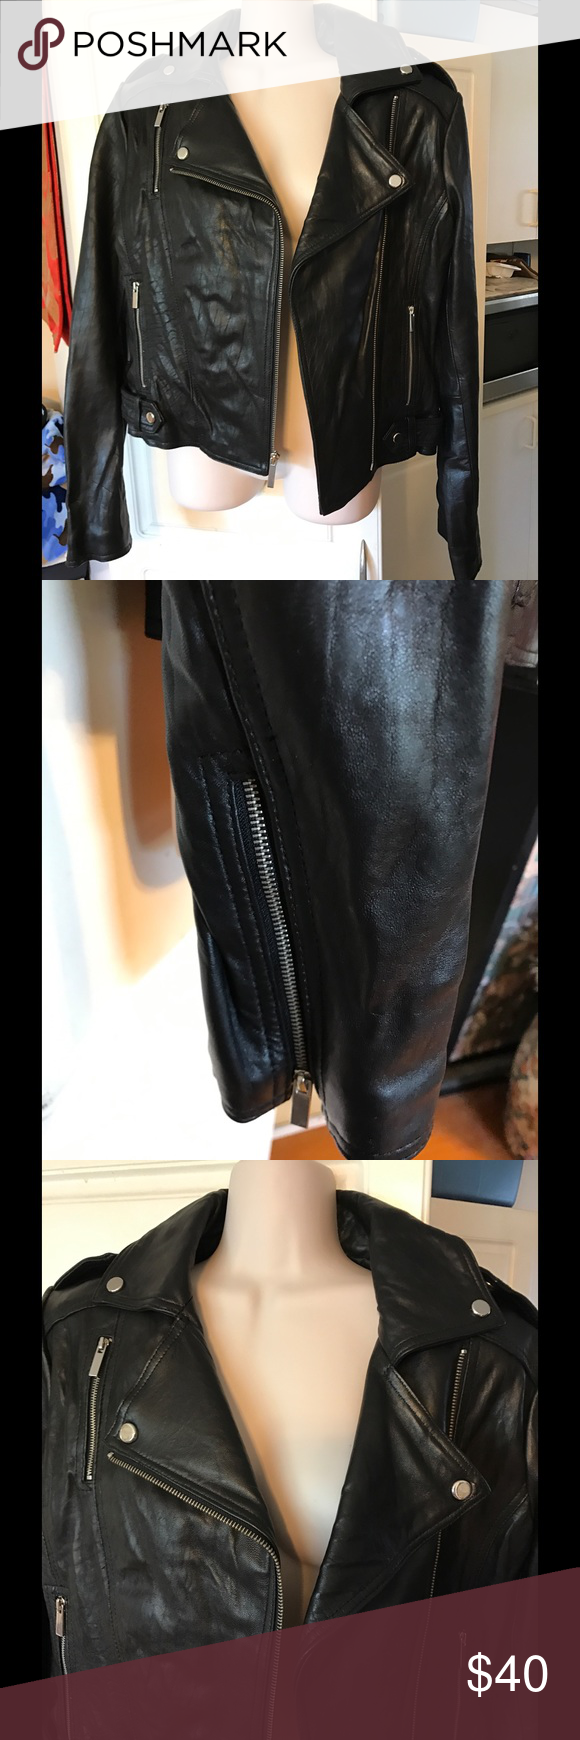 🎀🍒💕VICTORIAS SECRET Leather Jacket🎀🍒💕 🎀🍒💕 victoria's Secret MODA International women's leather jacket. 🍒Size medium. 💕Purchased, but never did get to use it! 🍒Bust 20 inches armpit to armpit, 21 inches long, sleeve length 25.25 inch with zipper. ❤️Silver zipper and hardware. 🍒Purchased through Victoria's Secret. Retail is $298.💰💸🎈 Victoria's Secret Jackets & Coats